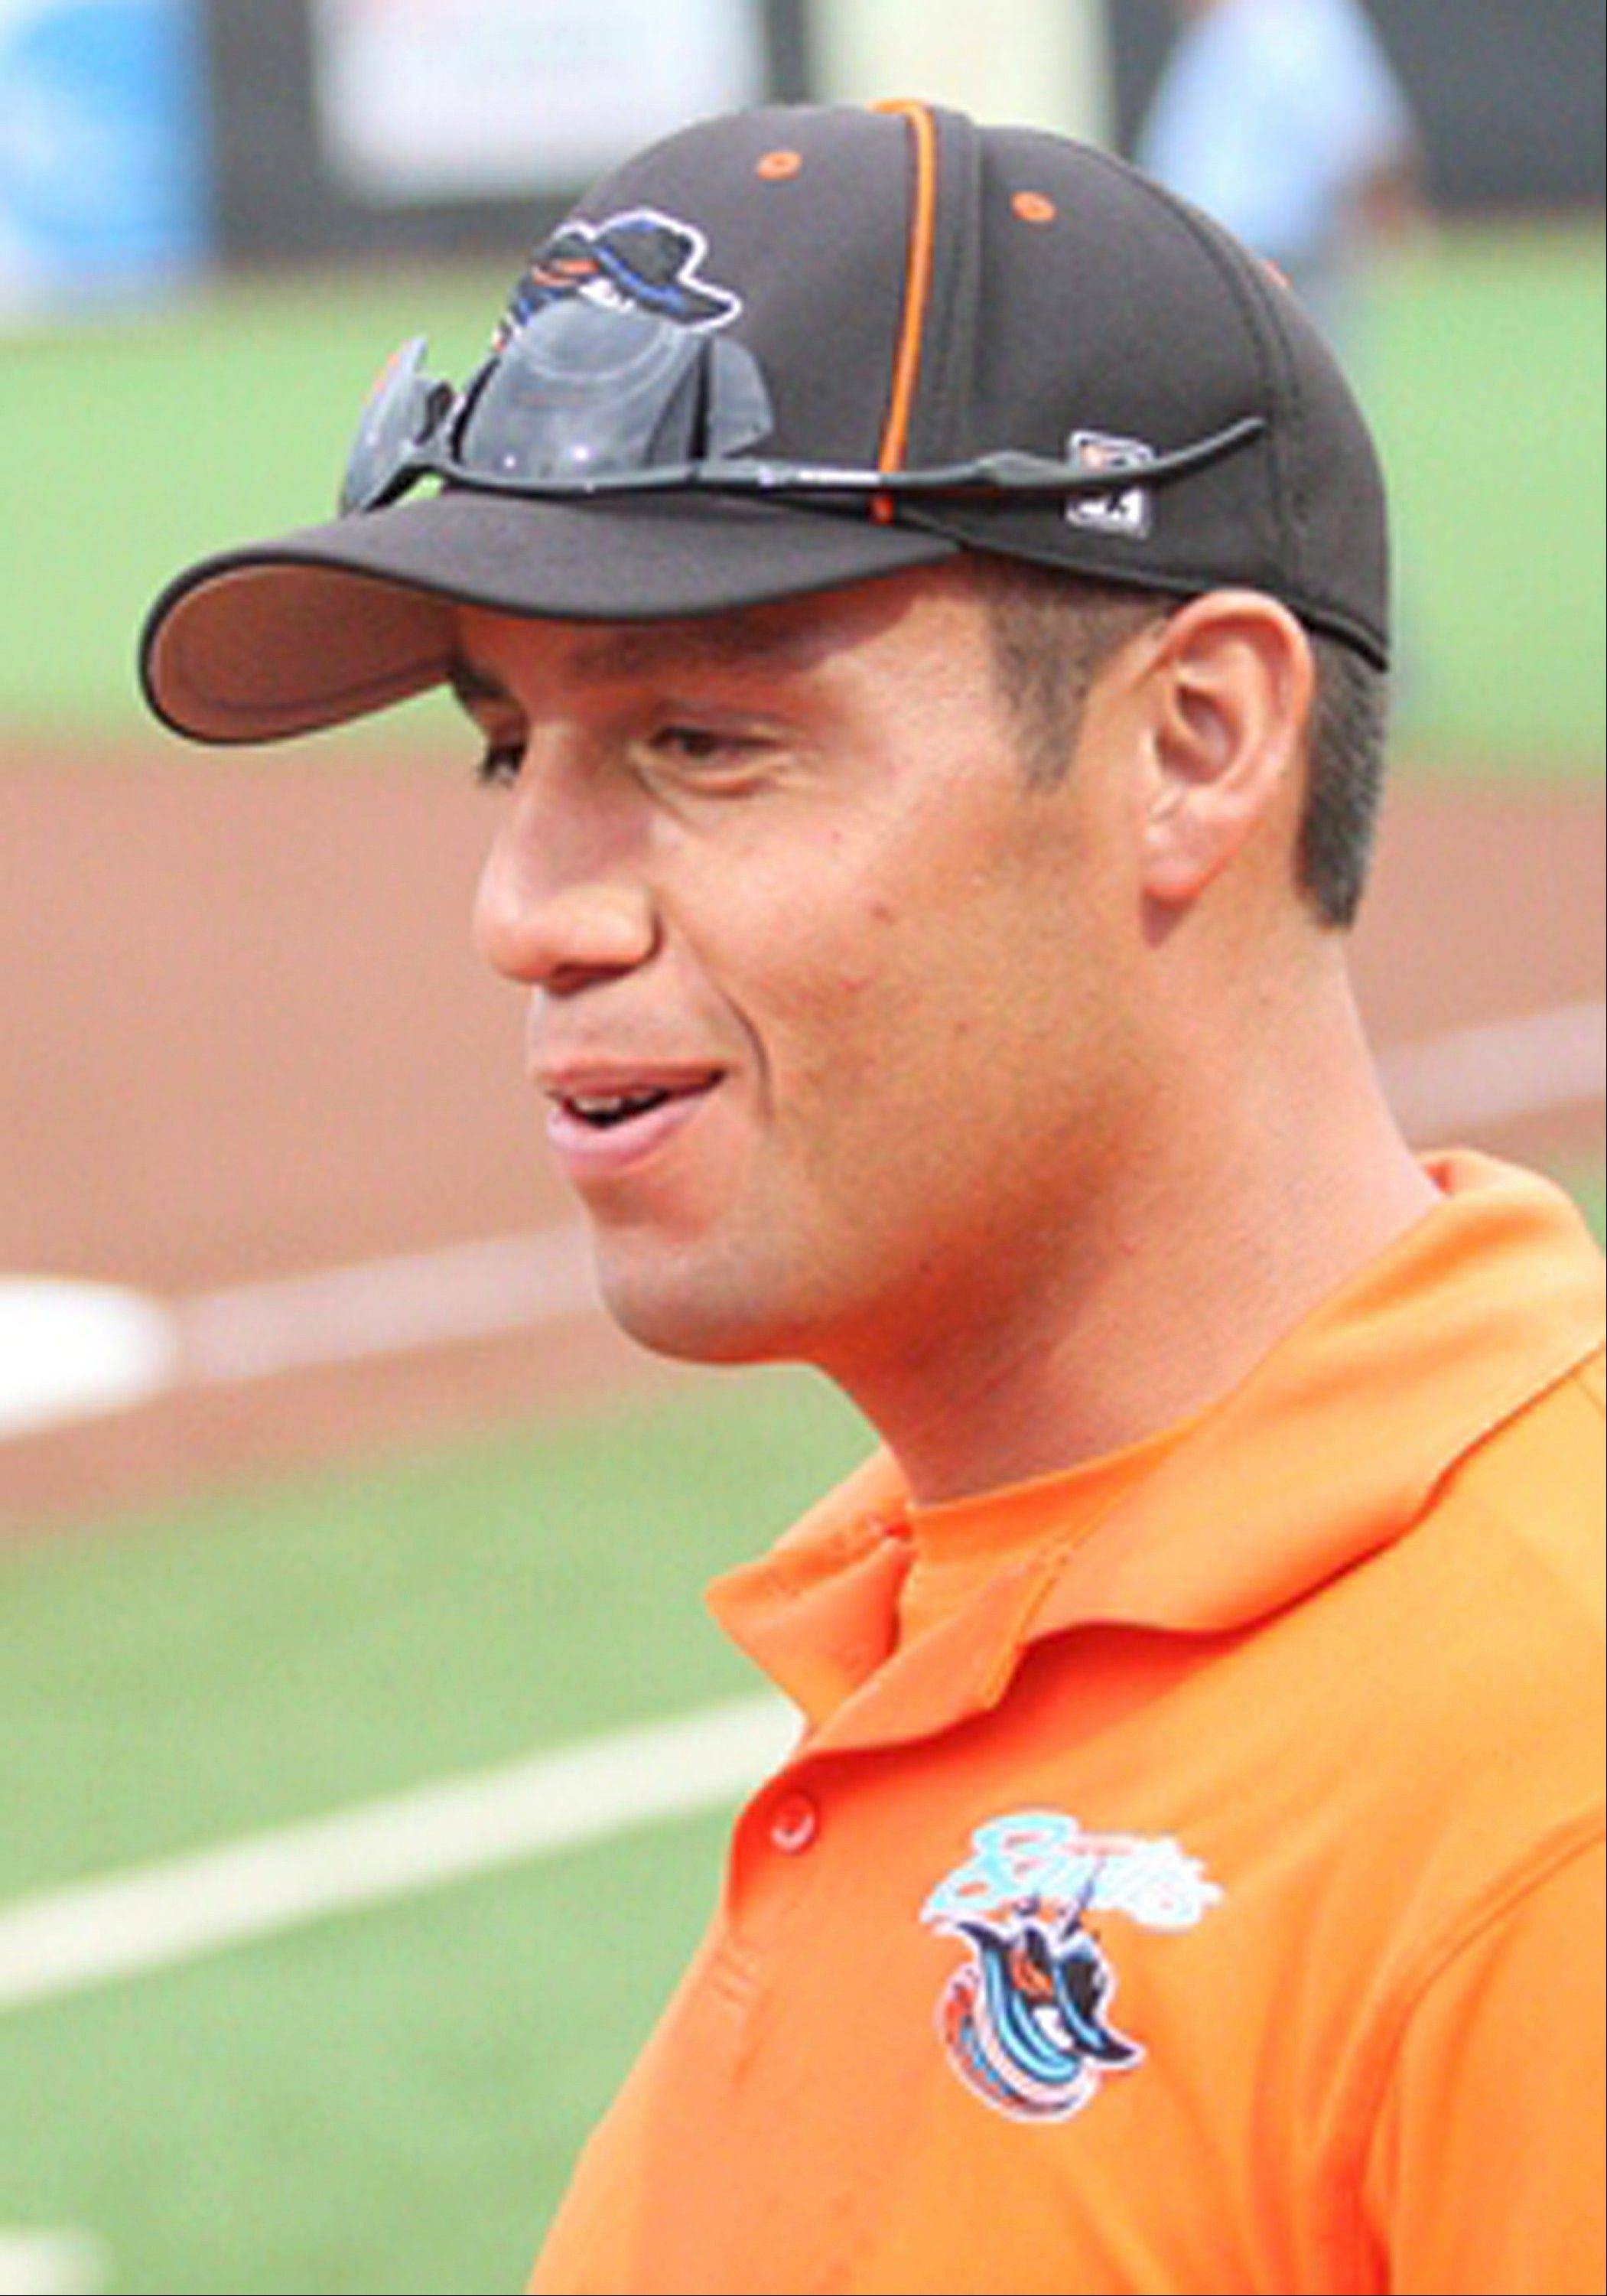 Michael Steuerwald will return as head coach of the Chicago Bandits for the 2013 season.